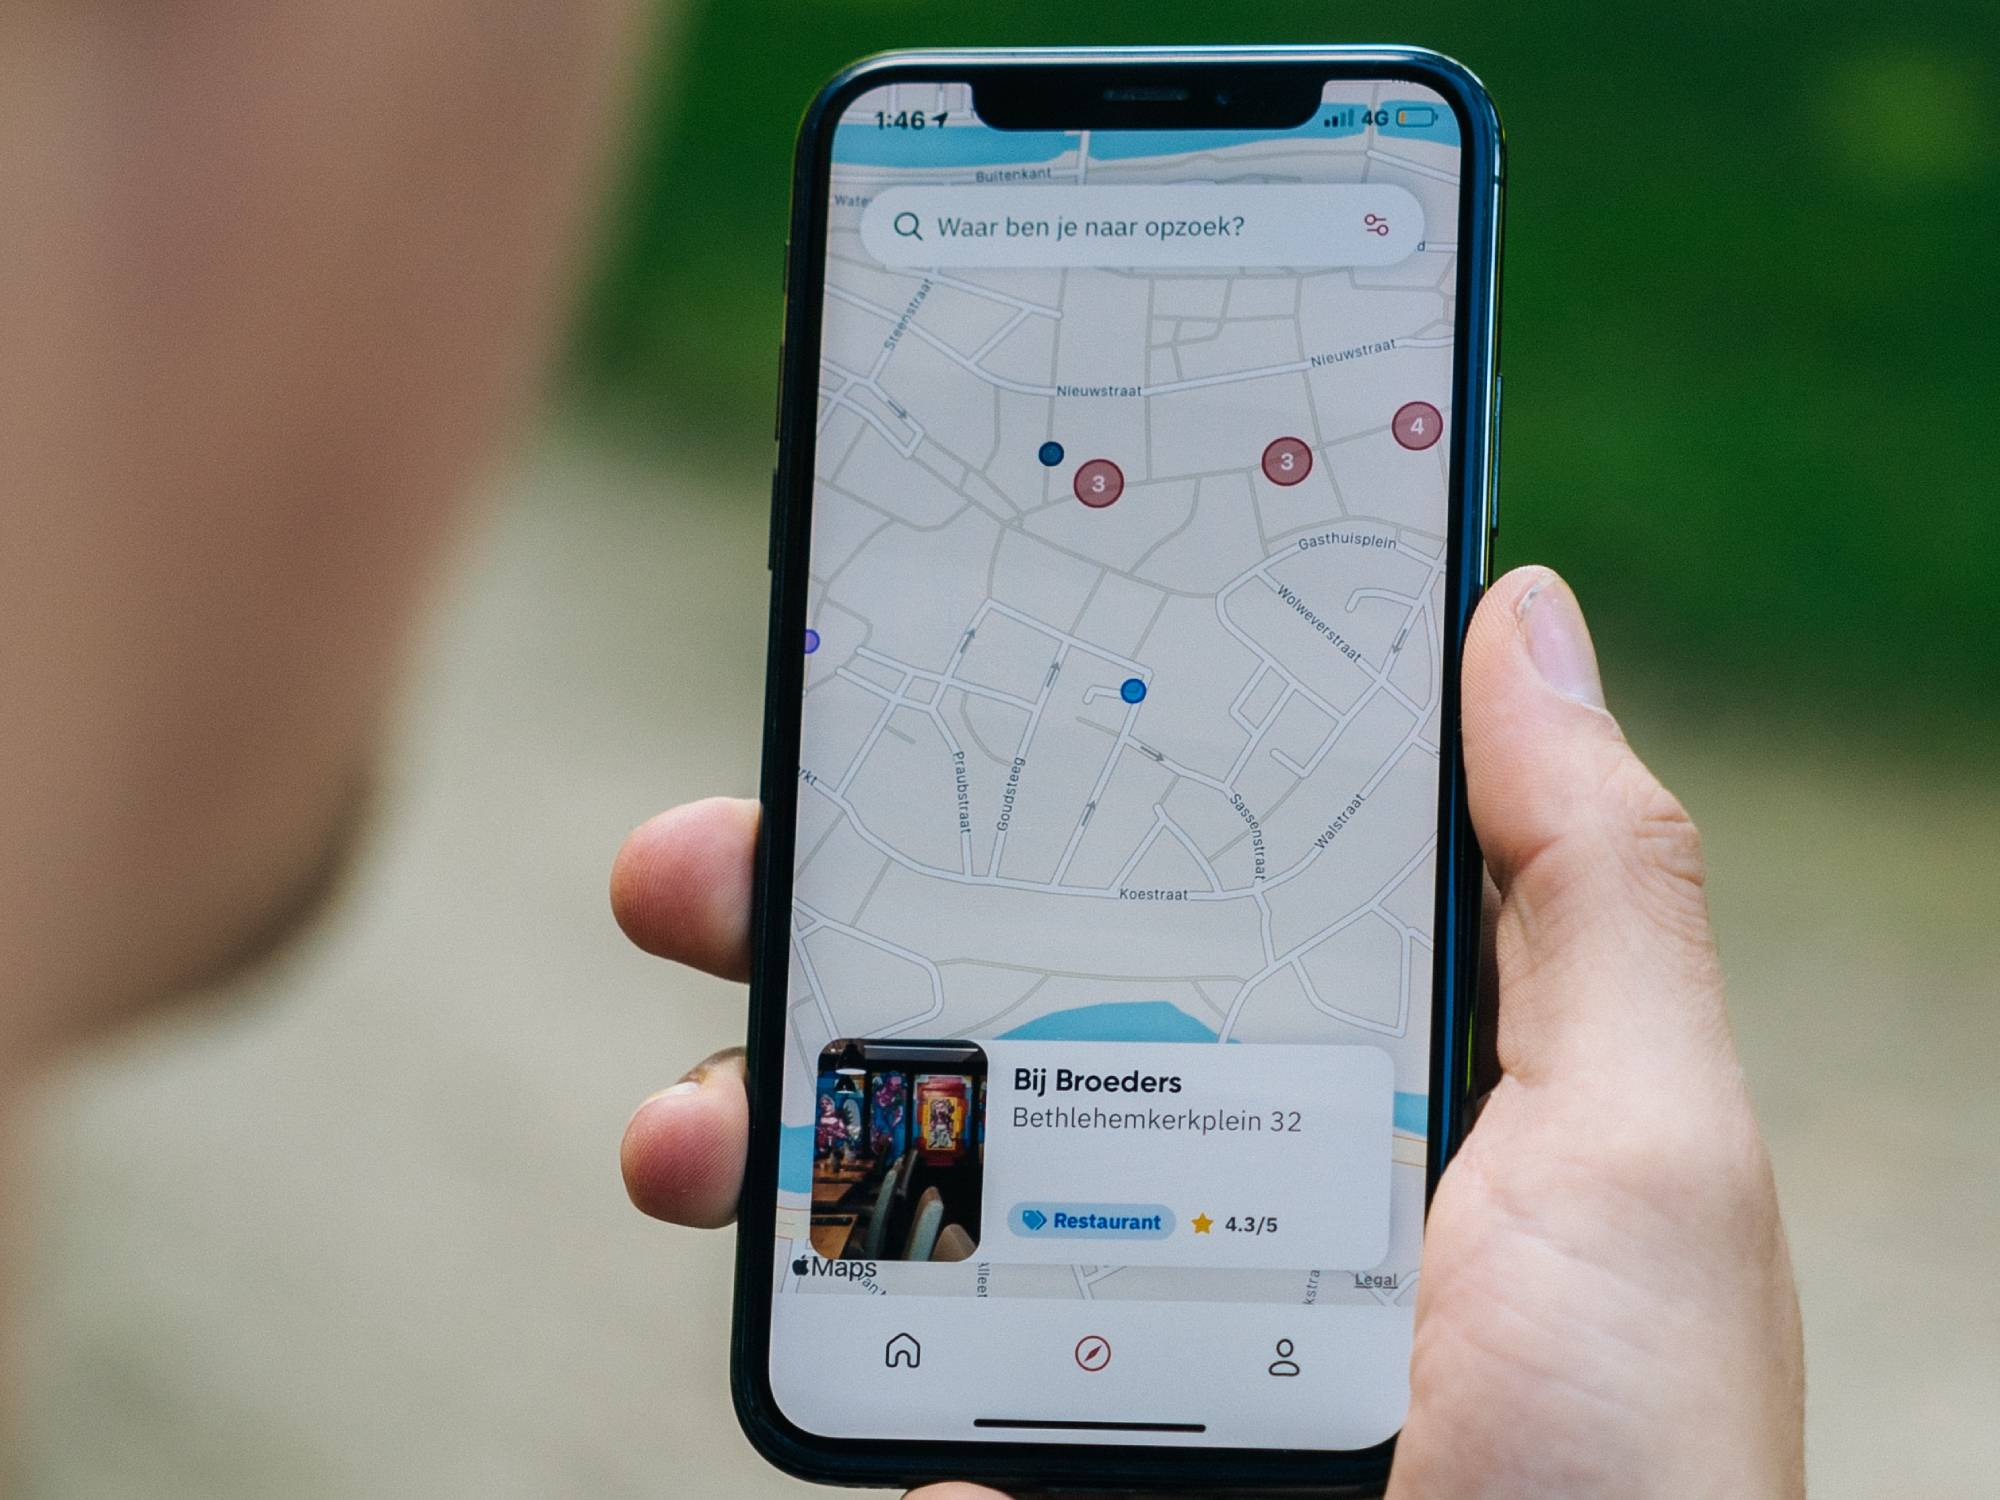 hand holding phone screen showing Apple Maps